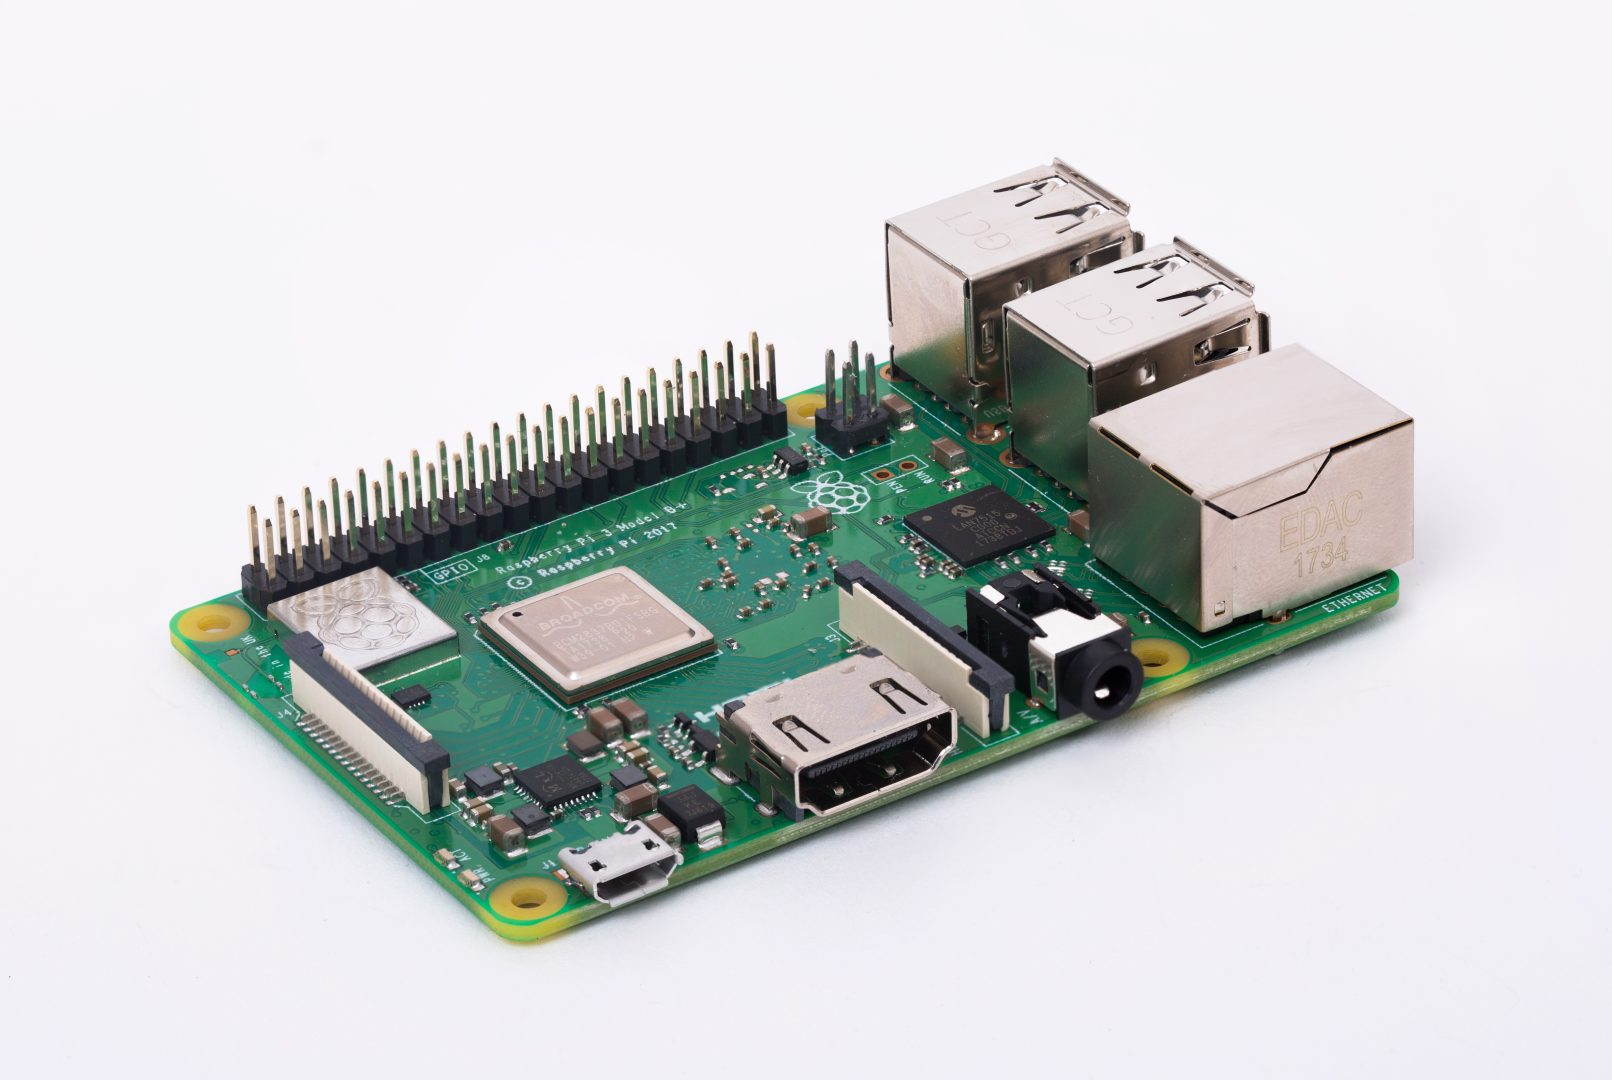 News - Lakka 2 1 1 with Raspberry Pi 3 B+ support